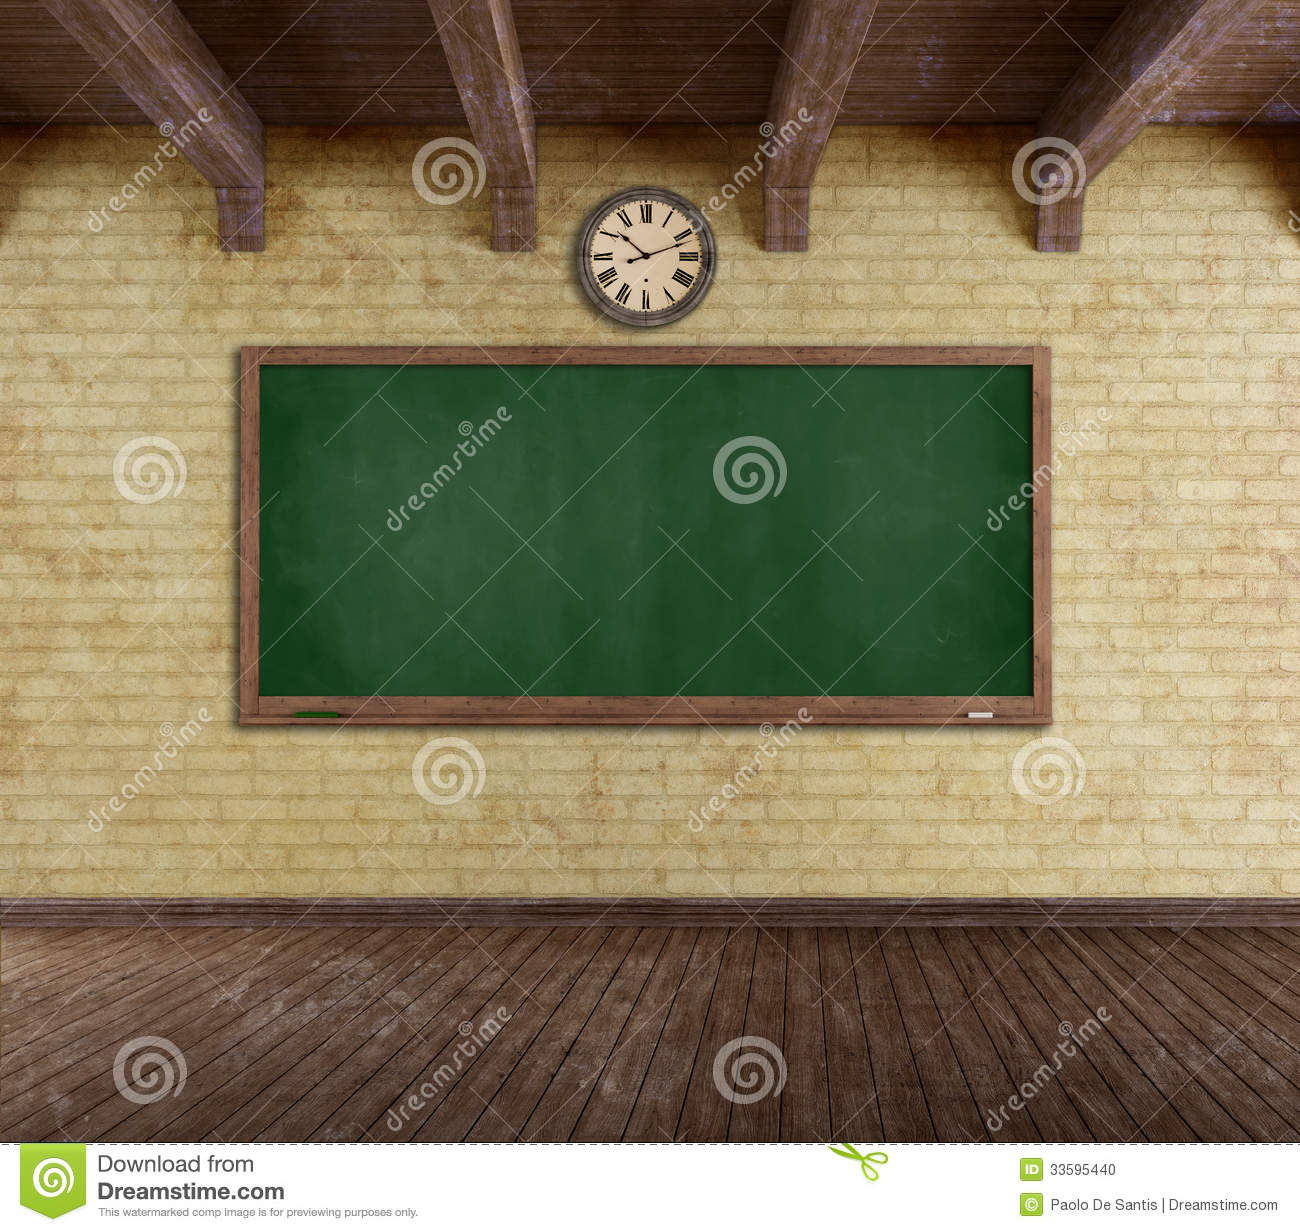 Grunge empty classroom stock illustration Illustration of